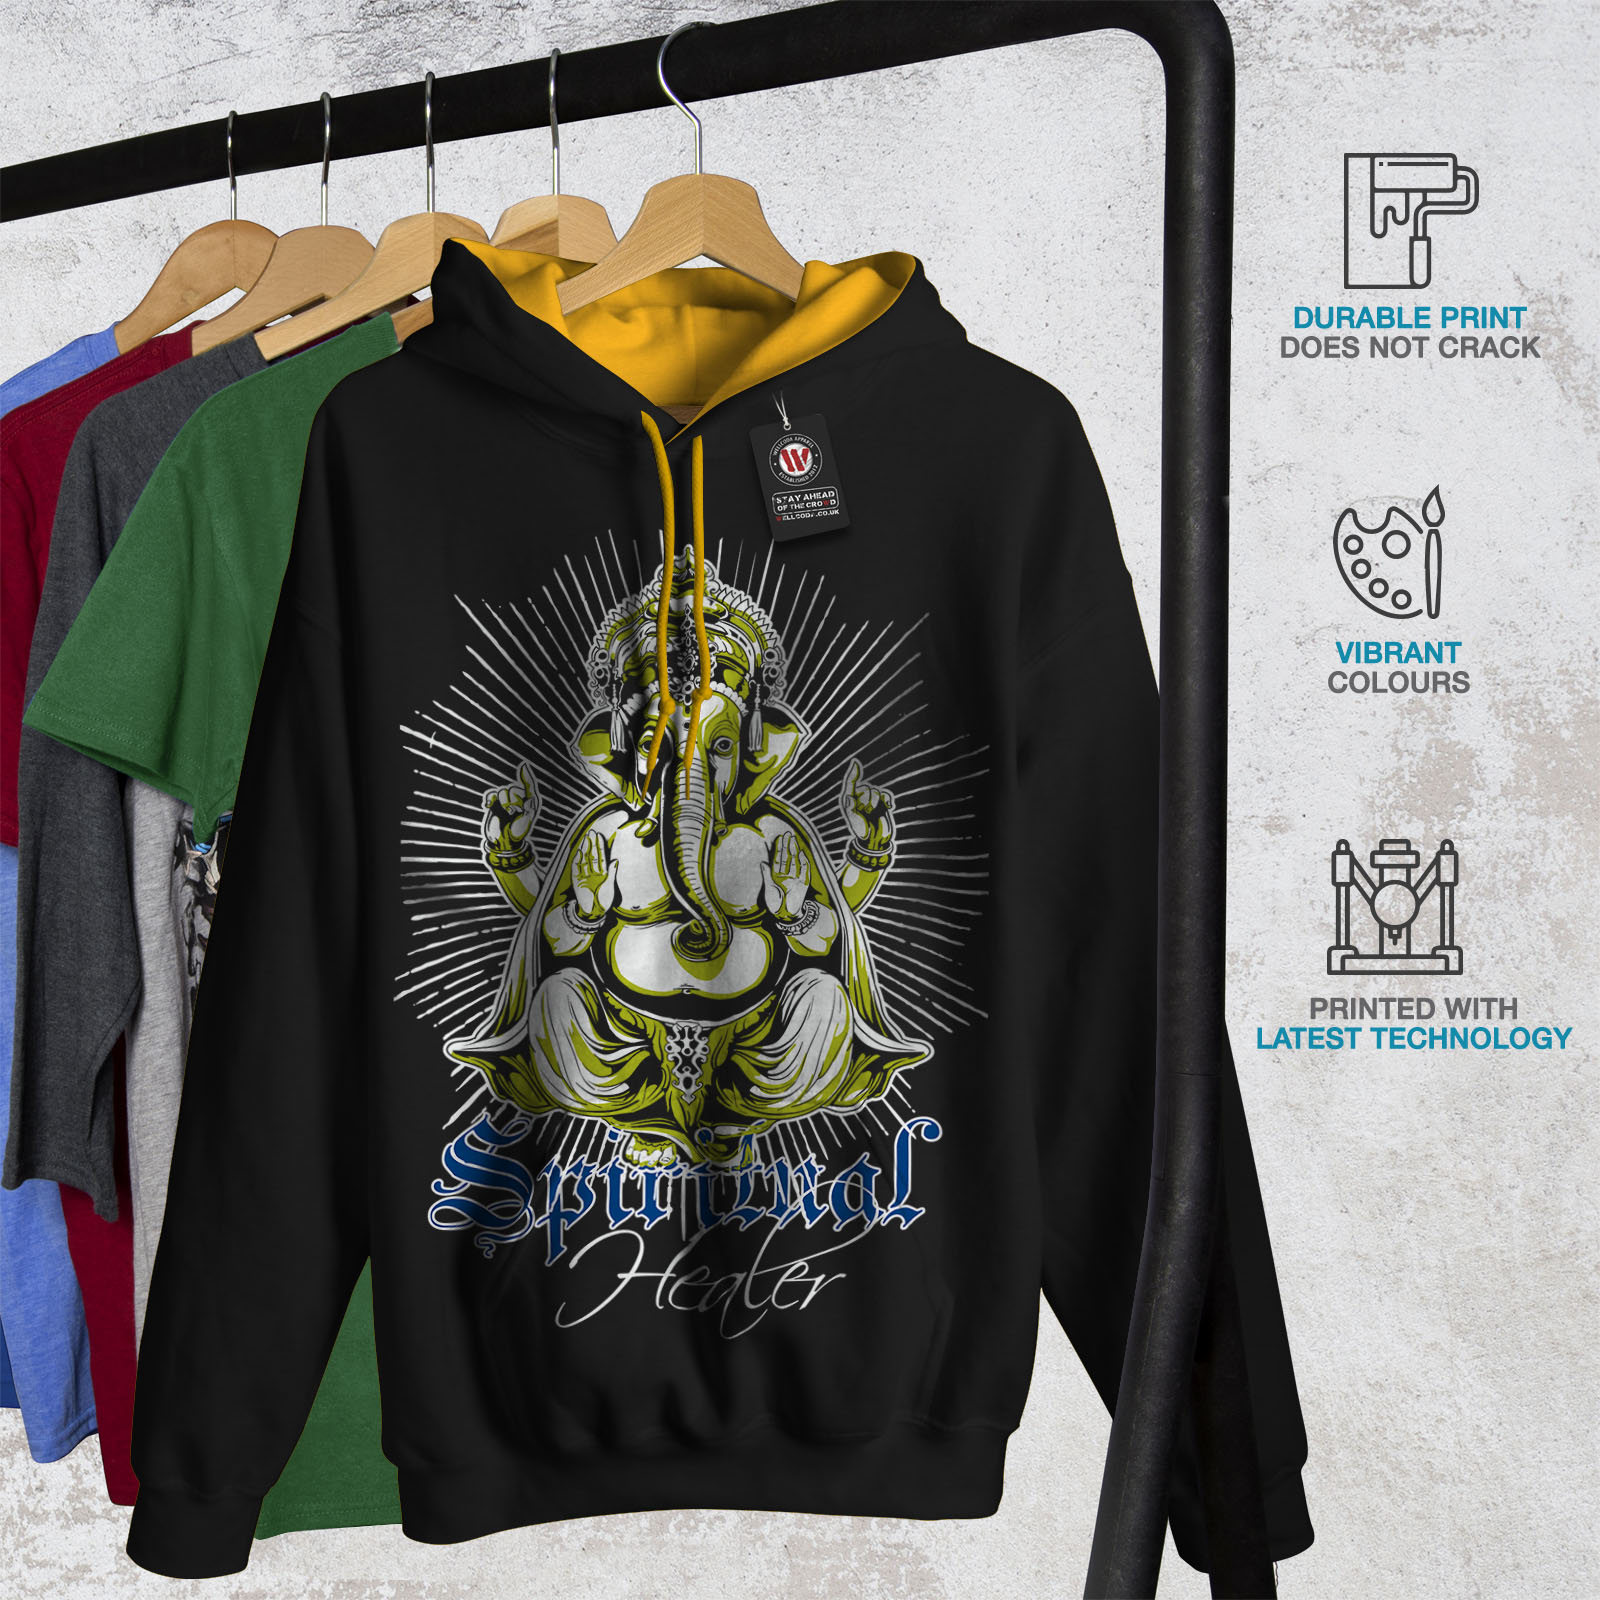 wellcoda Spiritual Healer God Mens Sweatshirt Ganesha Casual Jumper